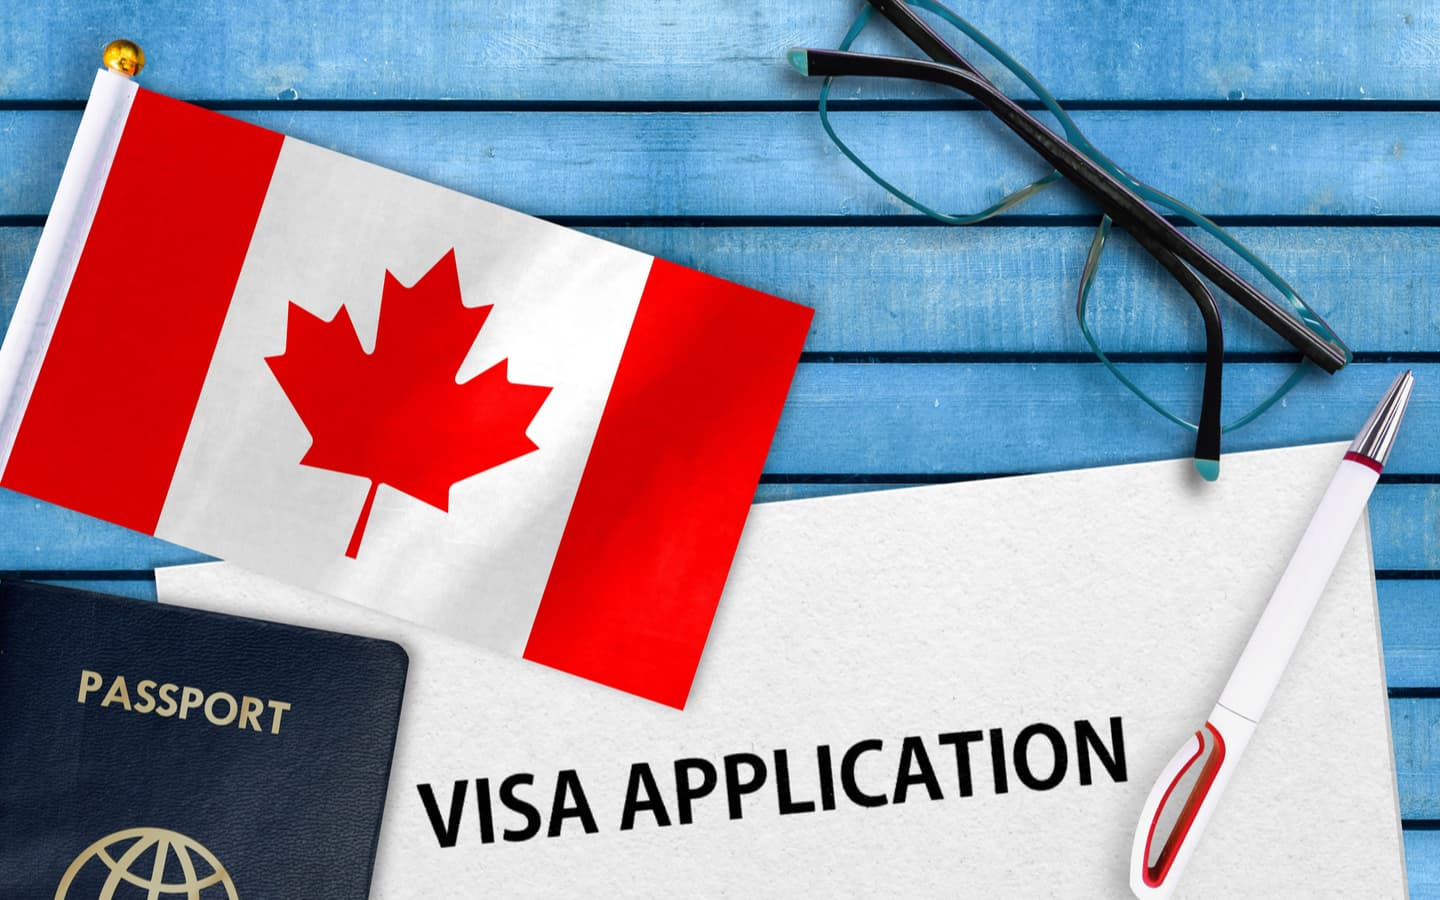 Visa application with Canadian flag and Canadian passport